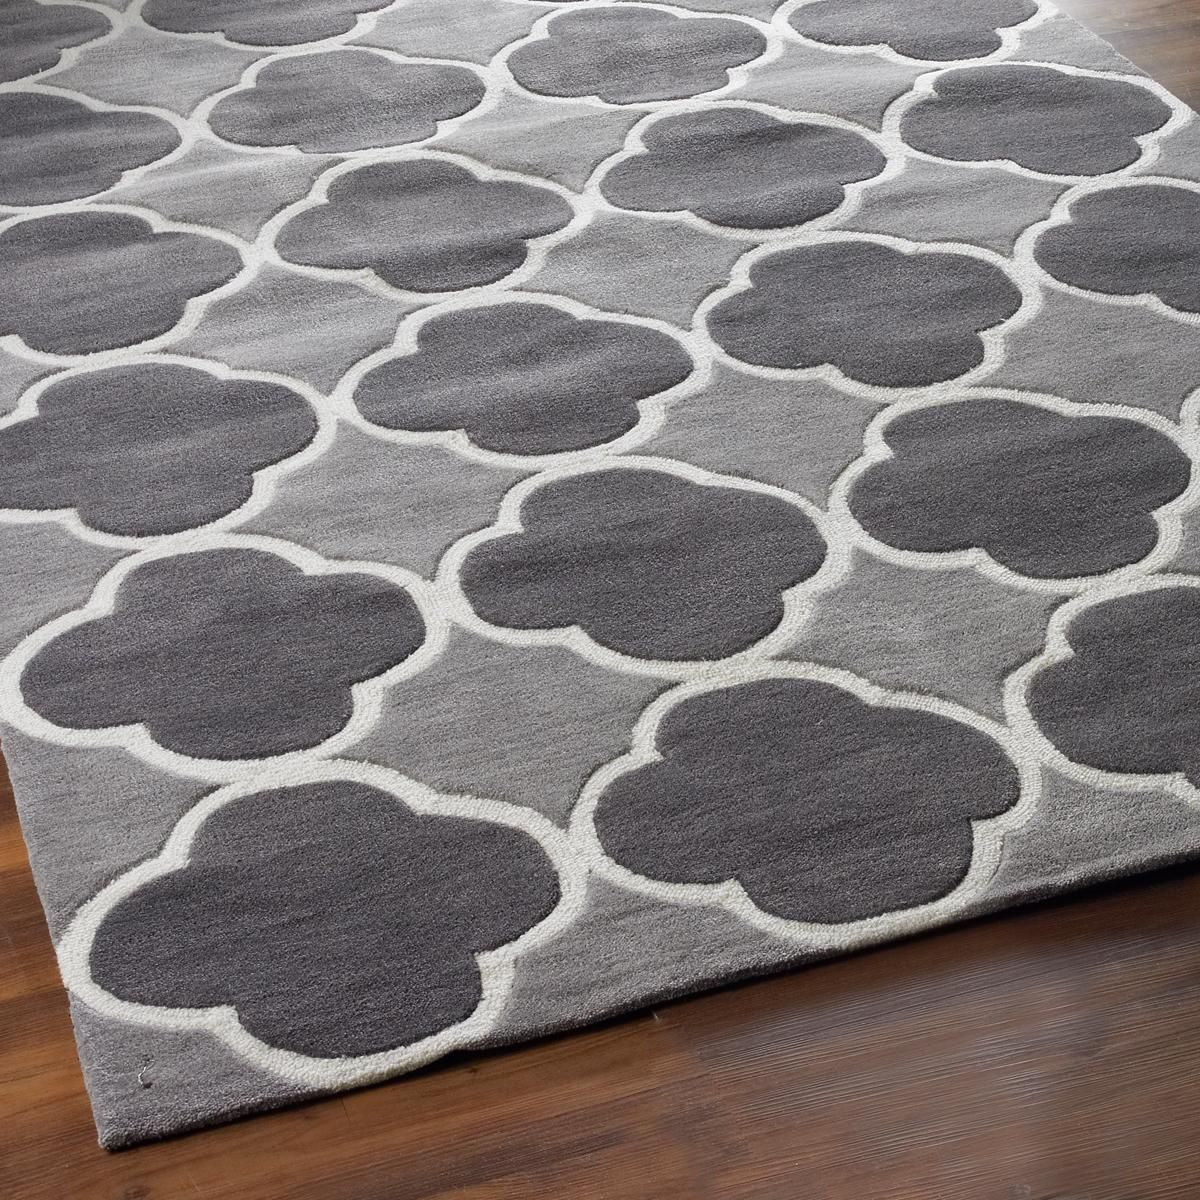 Cloverleaf Quatrefoil with Gray - 3 colors This classic quatrefoil pattern outlined in white loop pile is fresh and modern in popular gray color combinations. Crisp color contrast and simple geometry are woven in a plush cut and loop pile construction for dimension and durability. Select from Yellow with charcoal gray, Sea Blue with silver, or charcoal Gray with silver. 100% Poly/Acrylic pile can be spot cleaned with mild soap and water.